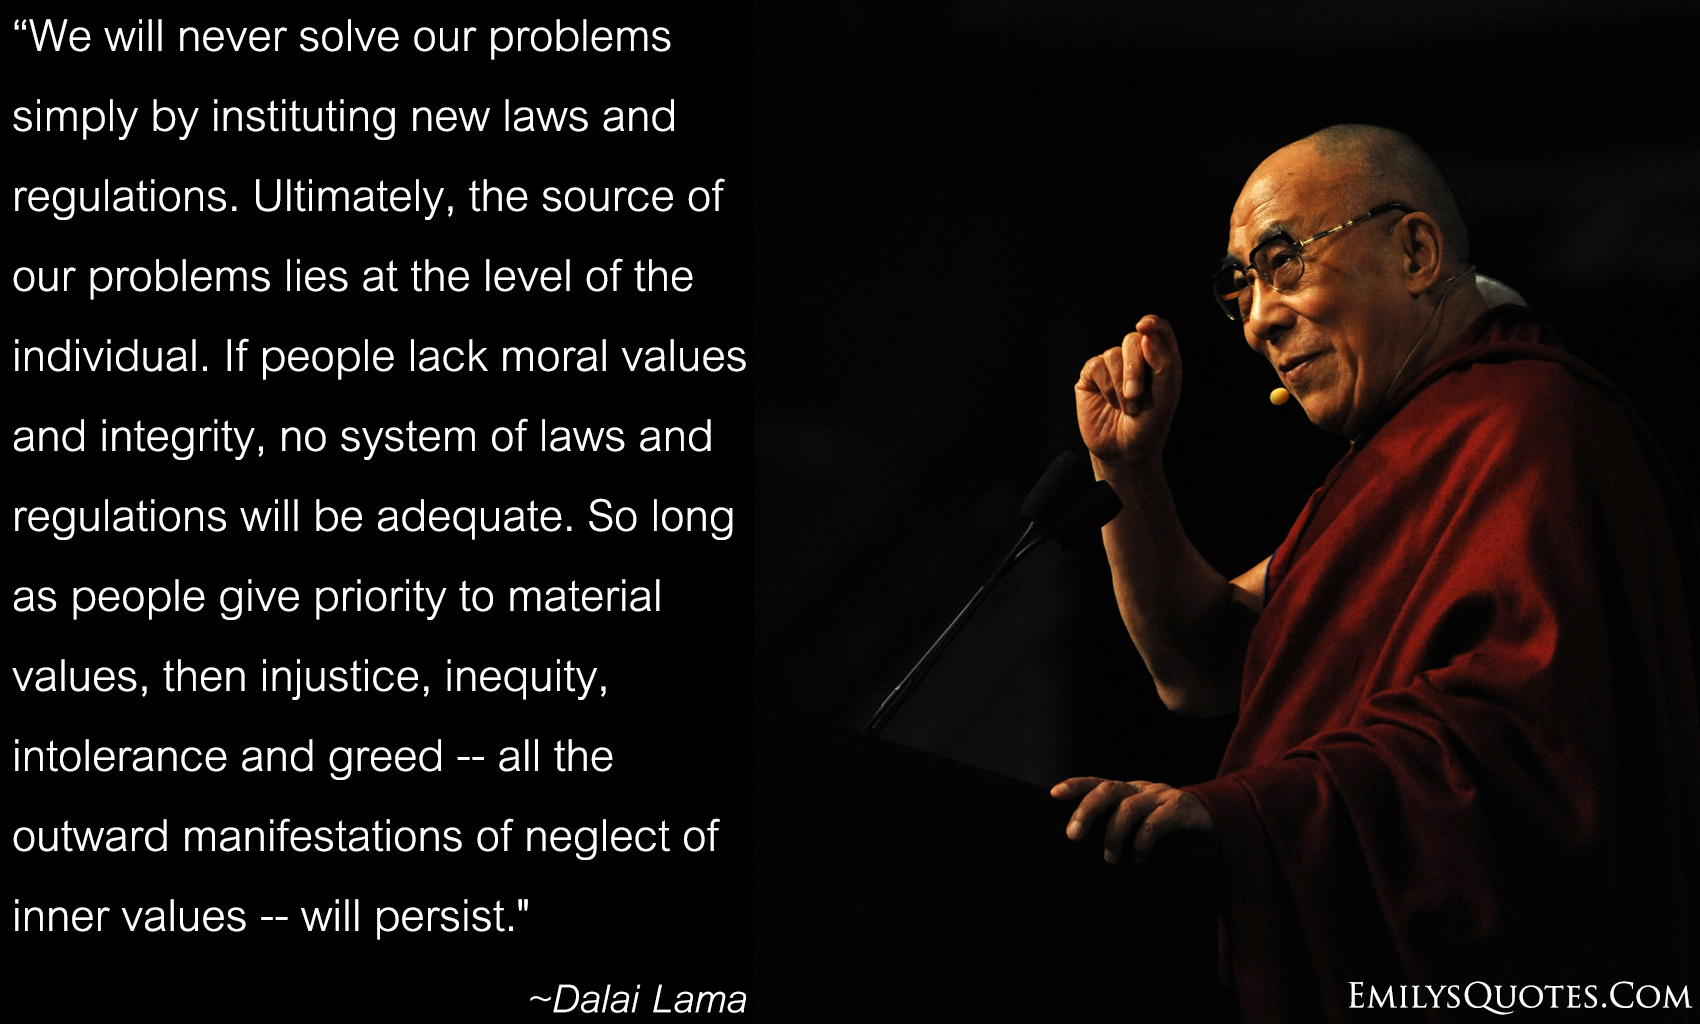 EmilysQuotes.Com - great, wisdom, people, society, greed, problems, Dalai Lama, reason